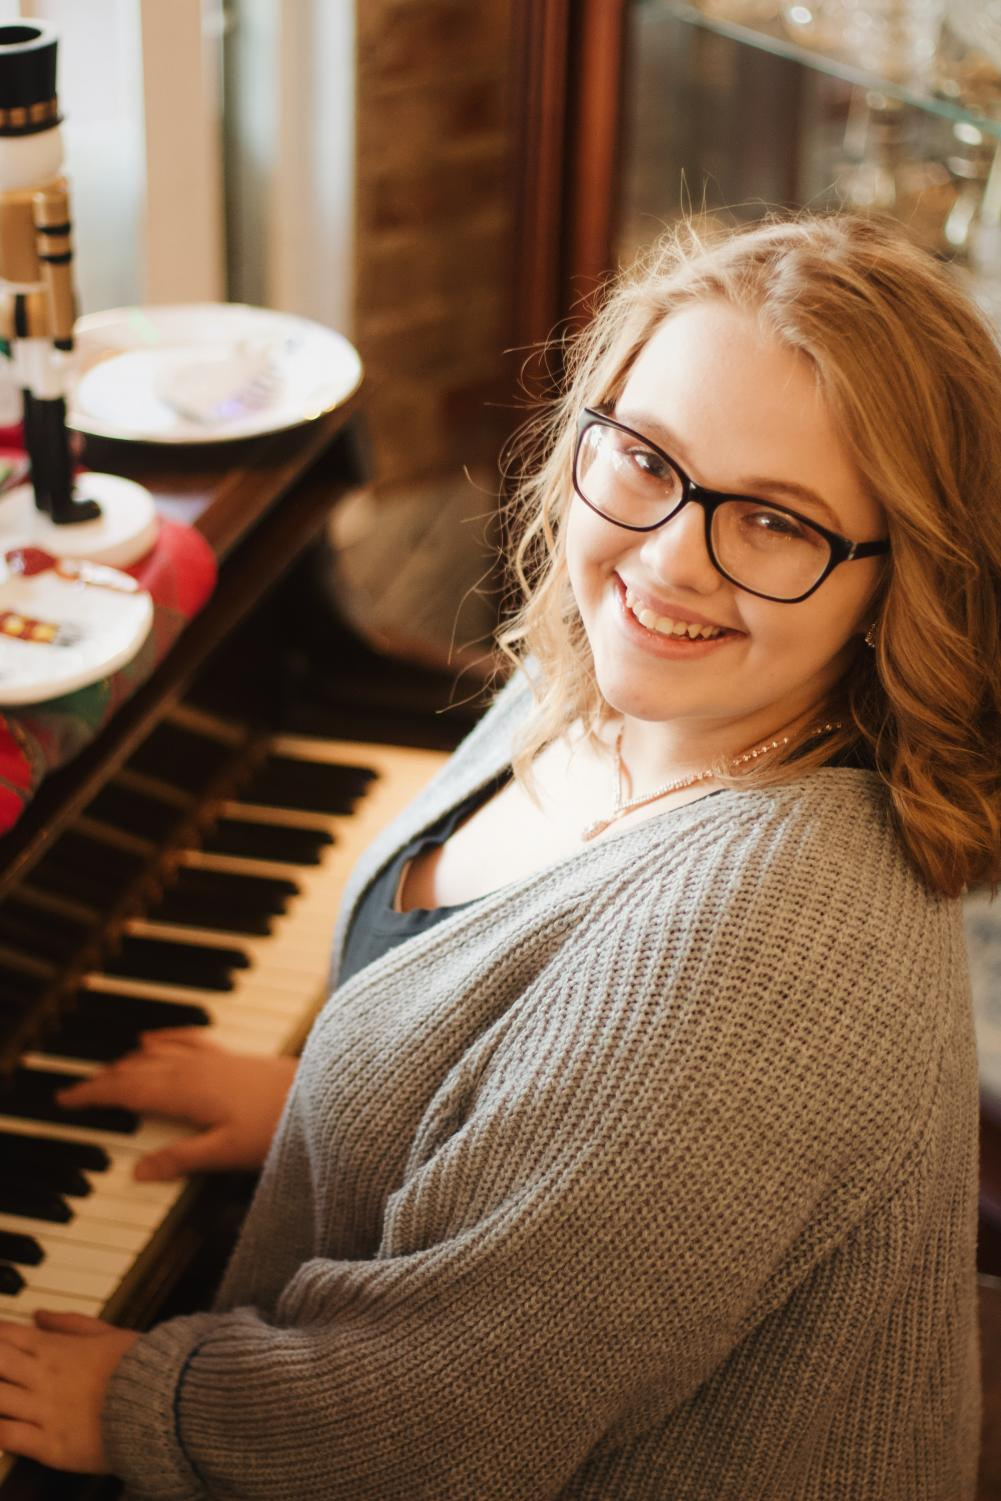 Senior Brittney Schaefer smiles while showing off her piano talents.